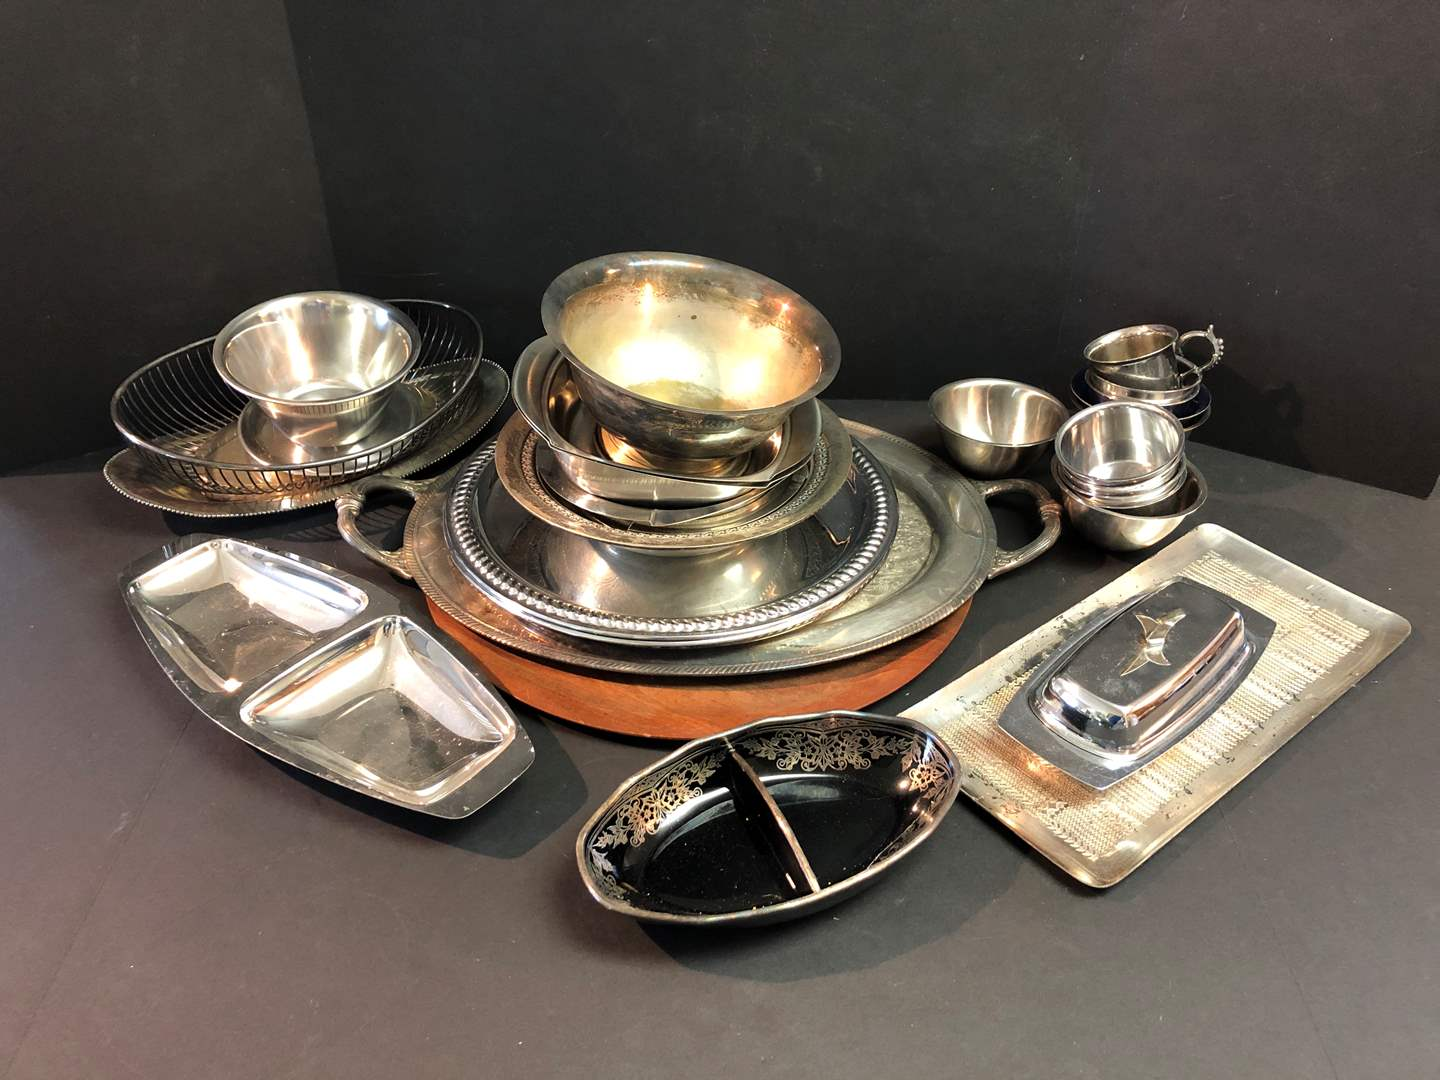 Lot # 58 - Selection of Serving Dishes, Platters & Tidbit Trays (main image)